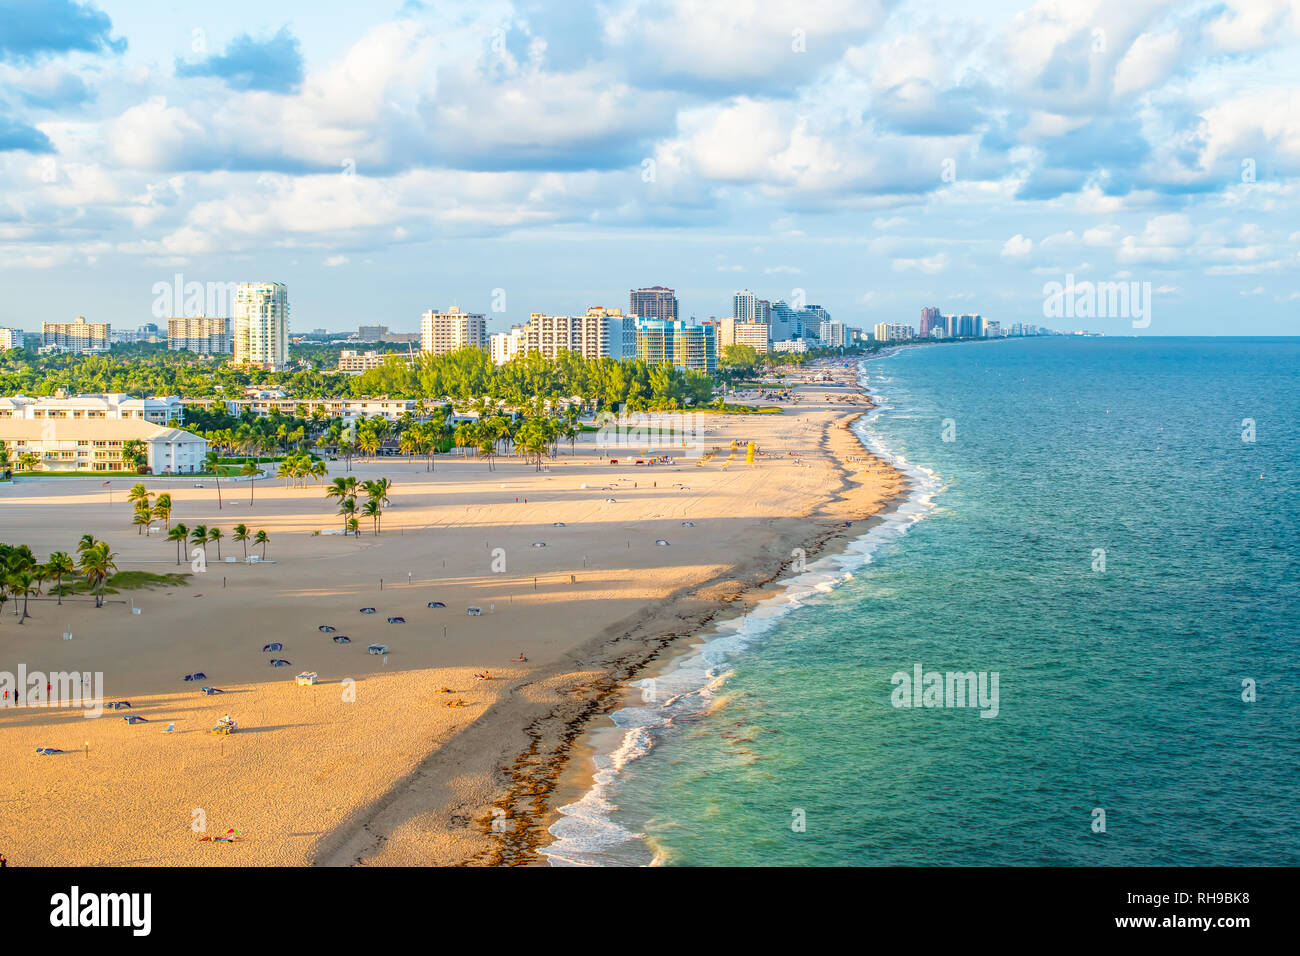 La plage de Fort Lauderdale, Floride Photo Stock